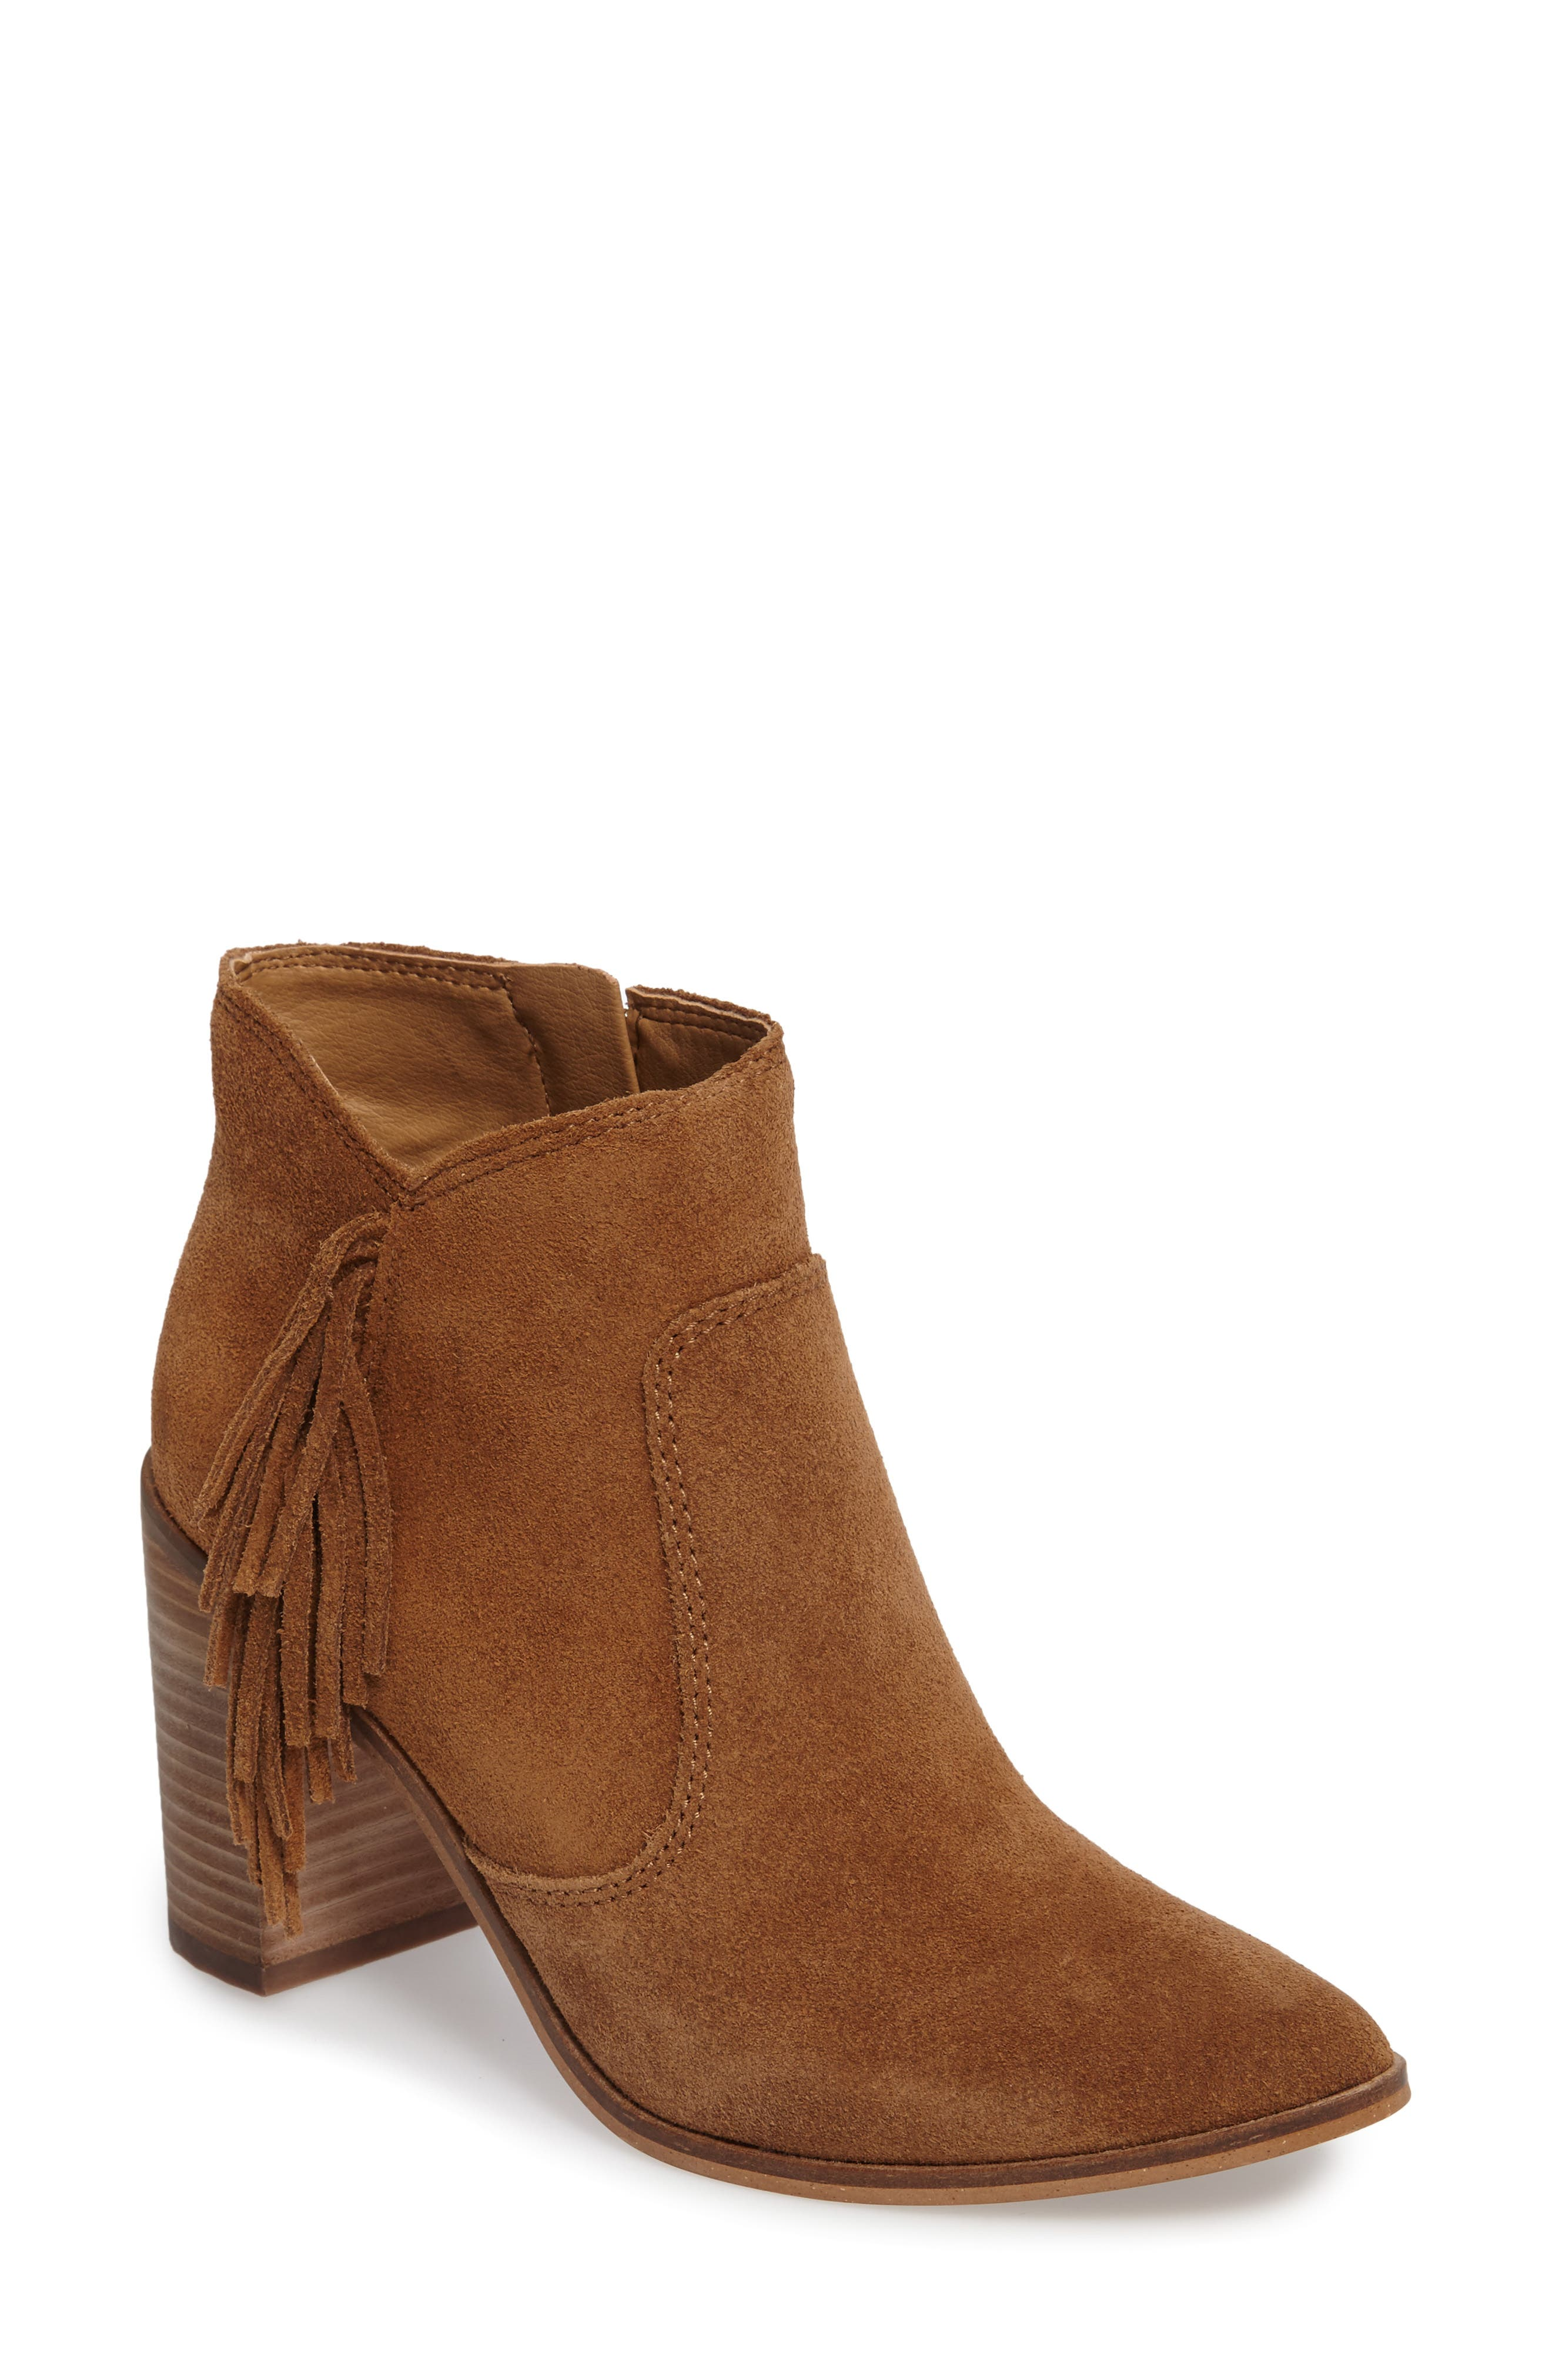 Main Image - Lucky Brand Mercerr Pointy Toe Fringe Bootie (Women)